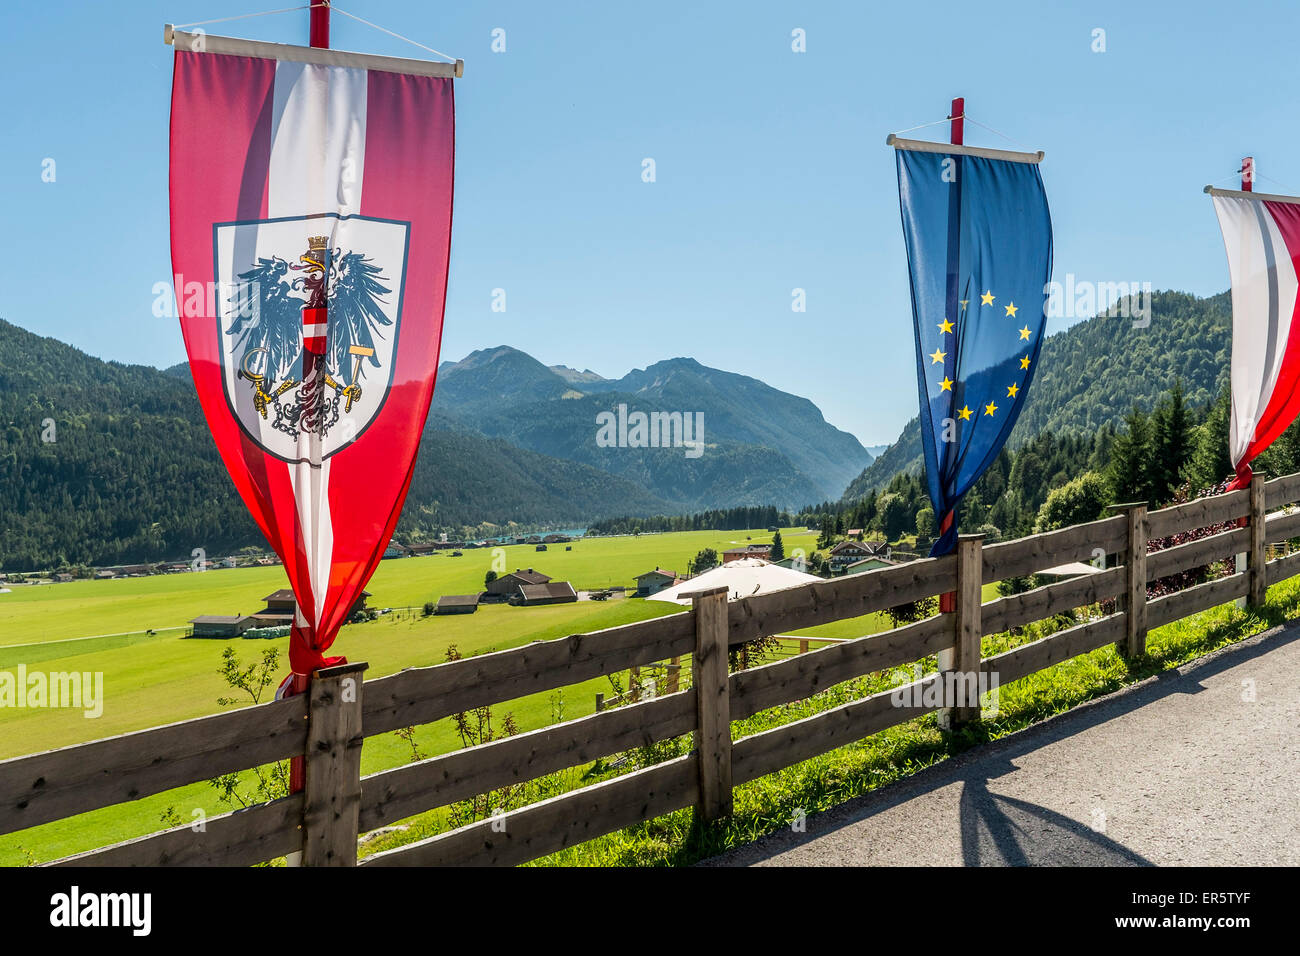 Flags at a fence, lake Achensee and Achenkirch in background, Tyrol, Austria - Stock Image